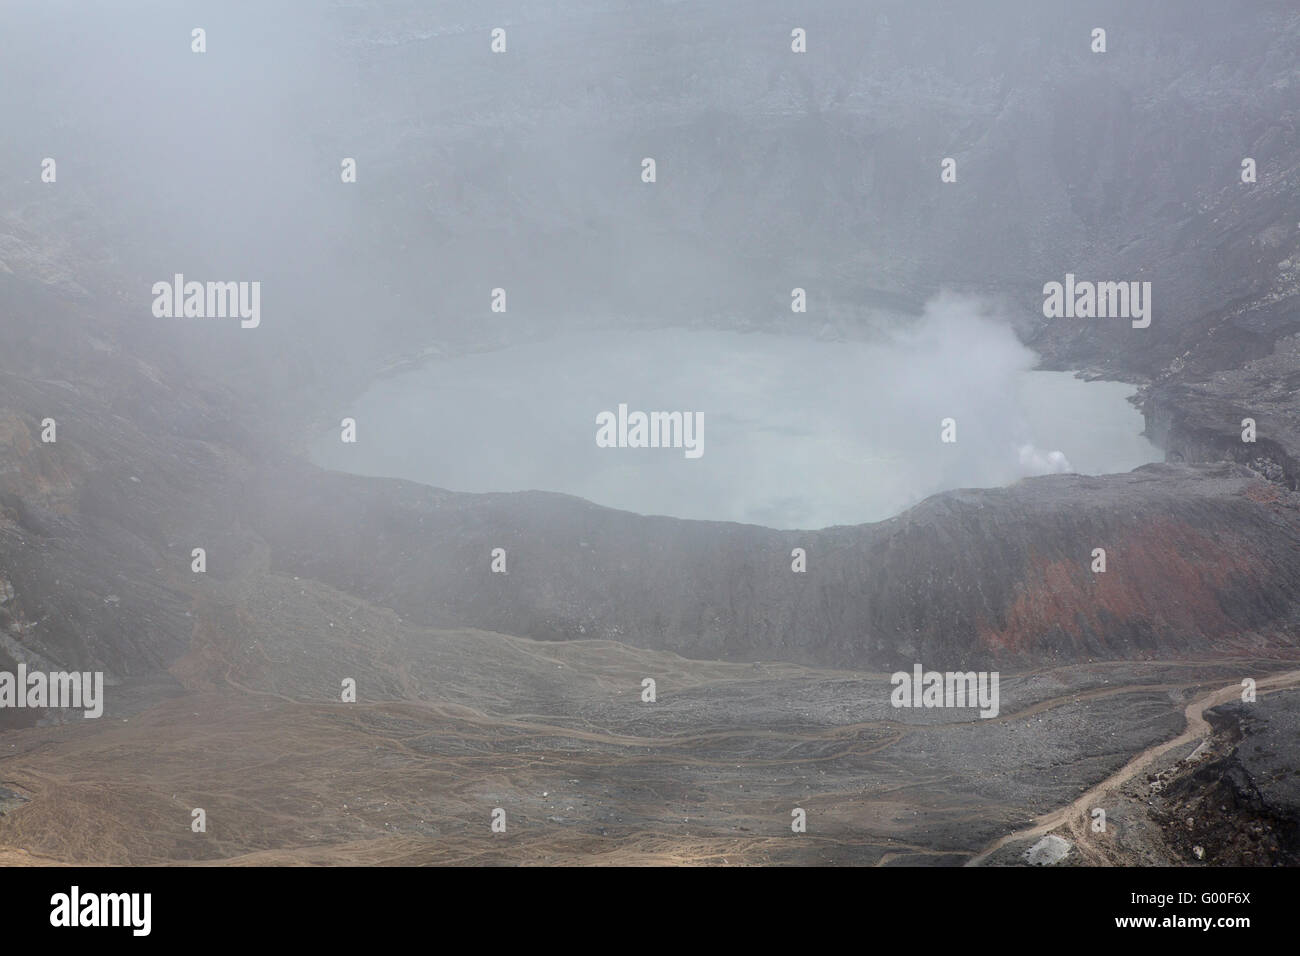 Cloud obscures the view of the crater of Poas Volcano in Parque Nacional Volcan Poas (Poas Volcano National Park) - Stock Image